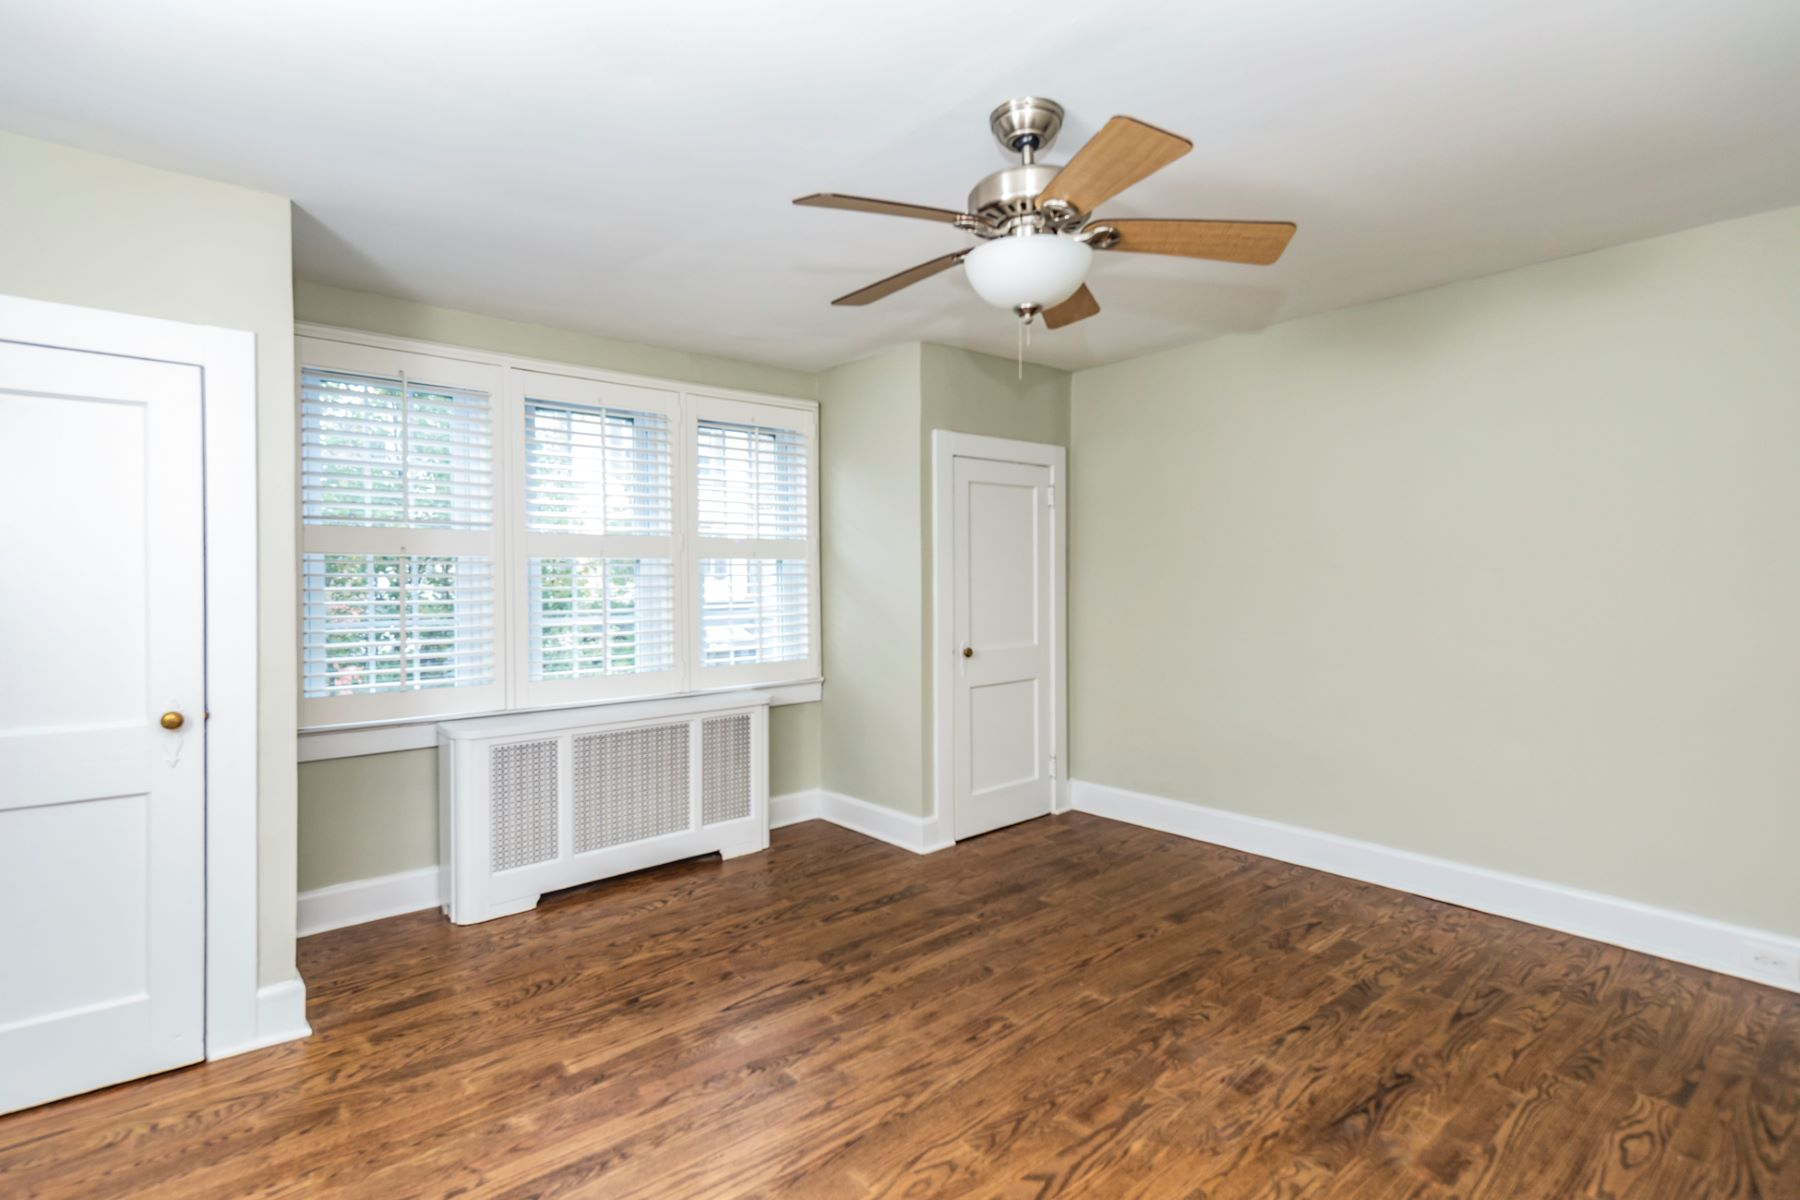 Additional photo for property listing at Location, Location, Location! 20 Witherspoon Street Apartment 1 Princeton, Nueva Jersey 08542 Estados Unidos